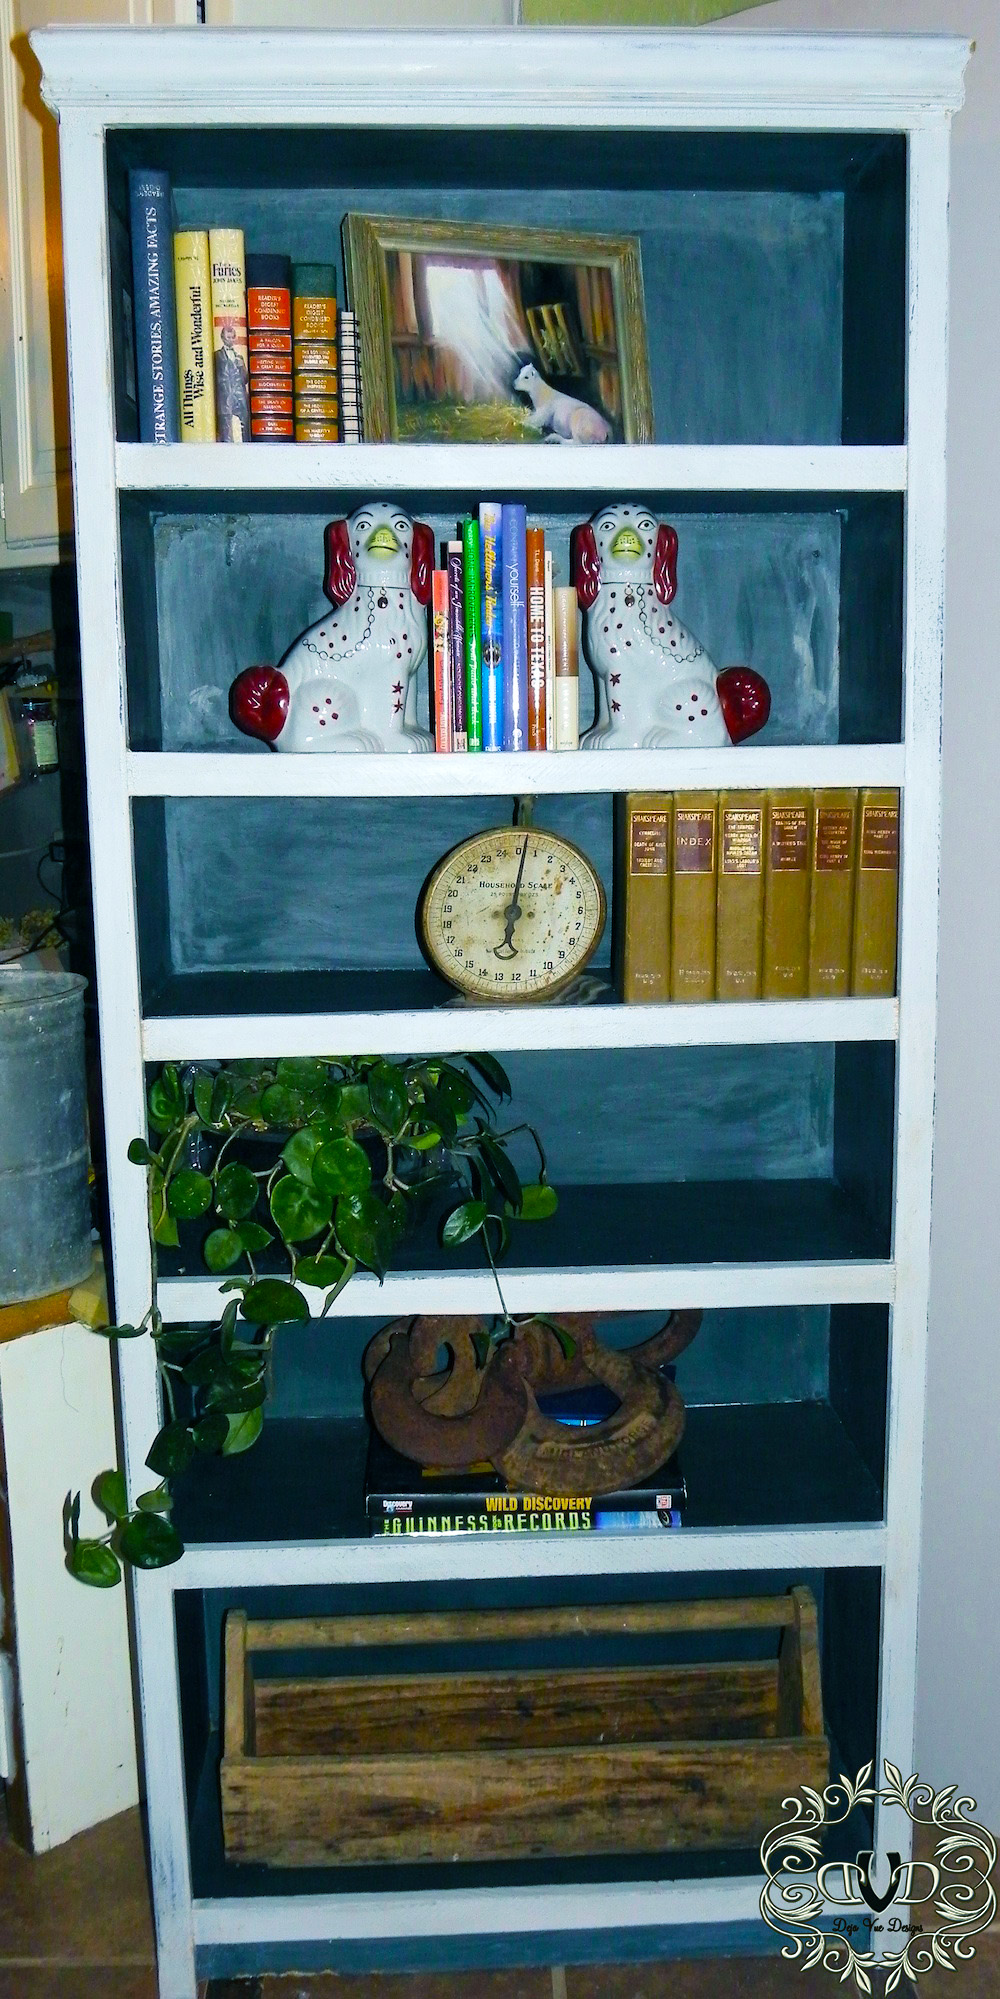 Goodwill bookcase with Milk Paint finish